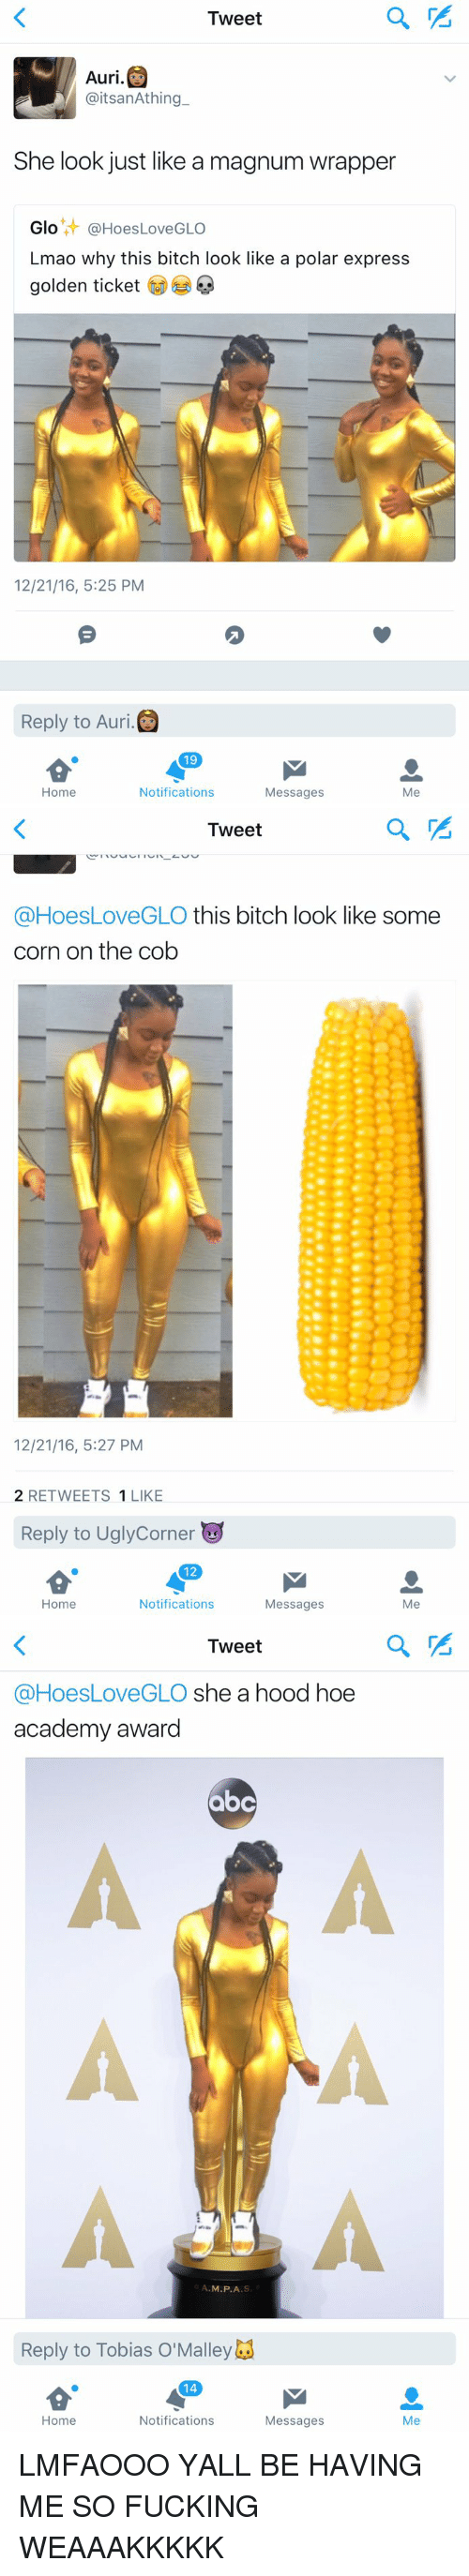 Polar Express: Tweet  Auri.  aitsanAthing  She look just like amagnum wrapper  Glo  @Hoes LoveGLO  Lmao why this bitch look like a polar express  golden ticket  12/21/16, 5:25 PM  Reply to Auri.  19  Notifications  Messages  Me  Home   Tweet  @Hoes LoveGLO this bitch look like some  corn on the cob  12/21/16, 5:27 PM  2 RETWEETS 1 LIKE  Reply to Uglycorner  12  Notifications  Home  Me  Messages   Tweet  @Hoes Love GLO she a hood hoe  academy award  abc  M.P.A  Reply to Tobias o'Malley  14  Notifications  Home  Messages  Me LMFAOOO YALL BE HAVING ME SO FUCKING WEAAAKKKKK